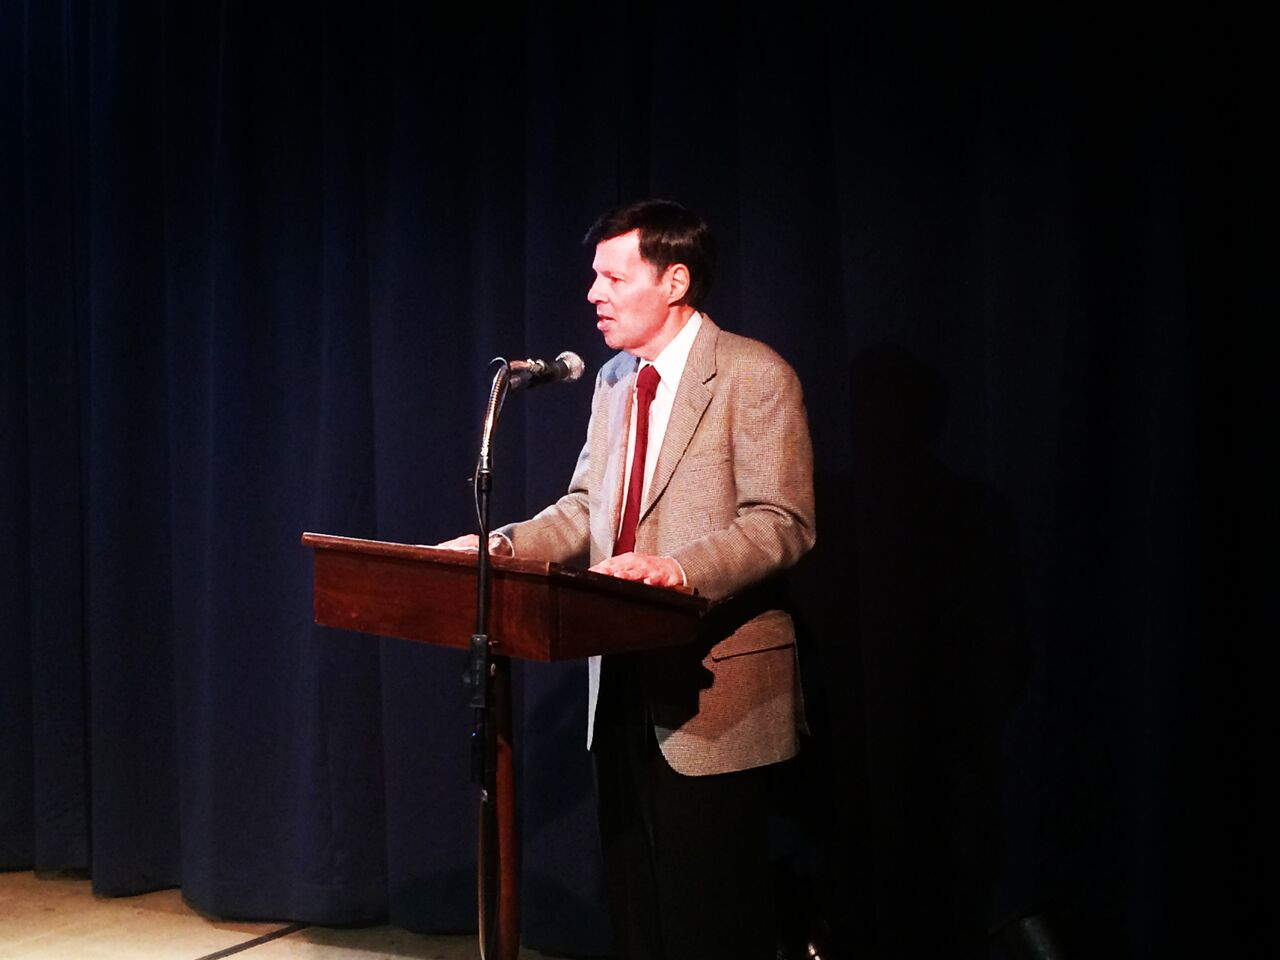 Michael Kerker at podium take 2.jpg